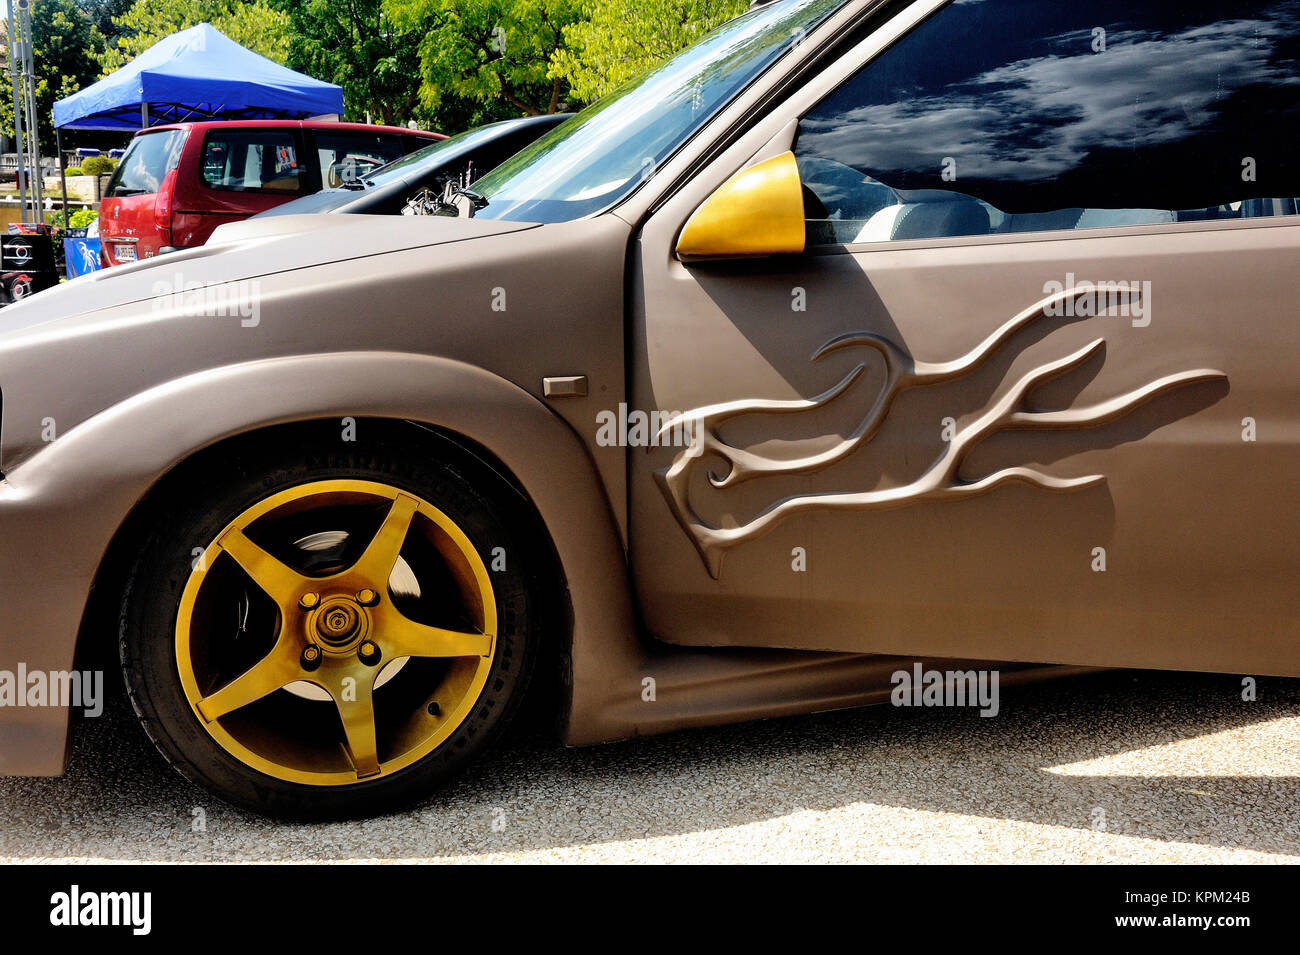 Car tuning exhibition Stock Photo: 168856475 - Alamy